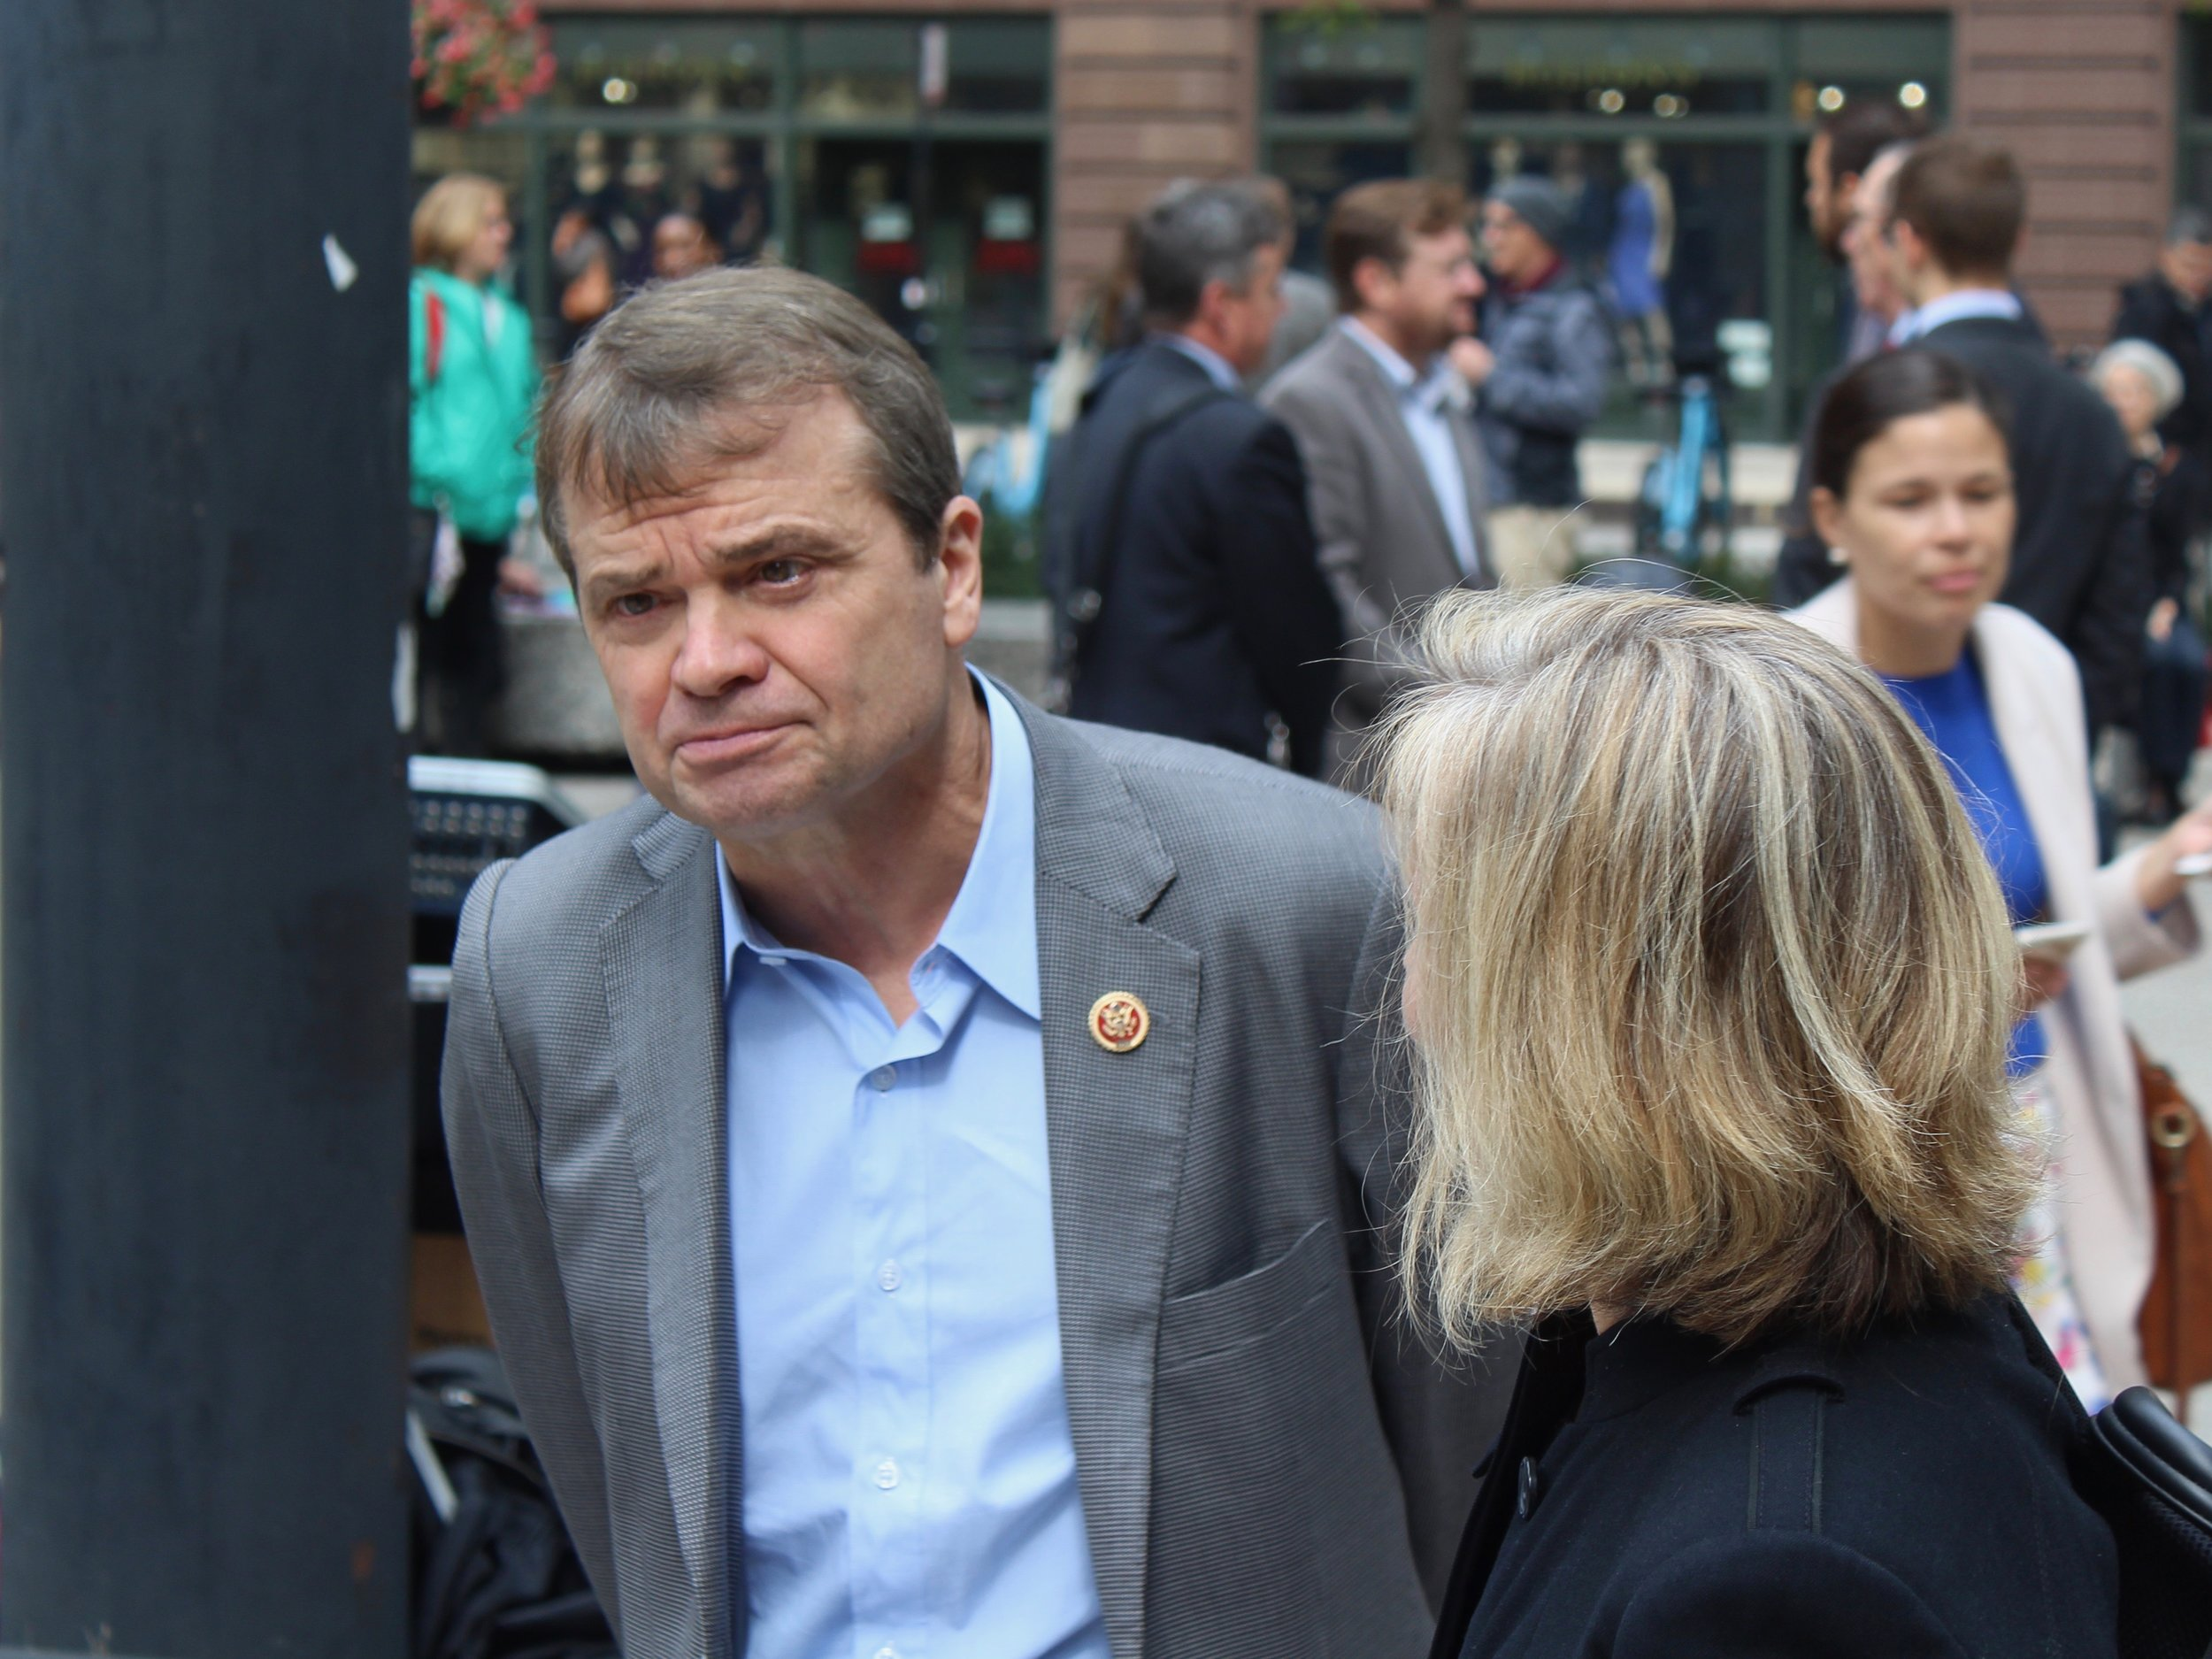 Congressman Mike Quigley has been one of President Trump's harshest critics, but nevertheless voted with the president more often than vote tallies would have suggested. (One Illinois/Ted Cox)